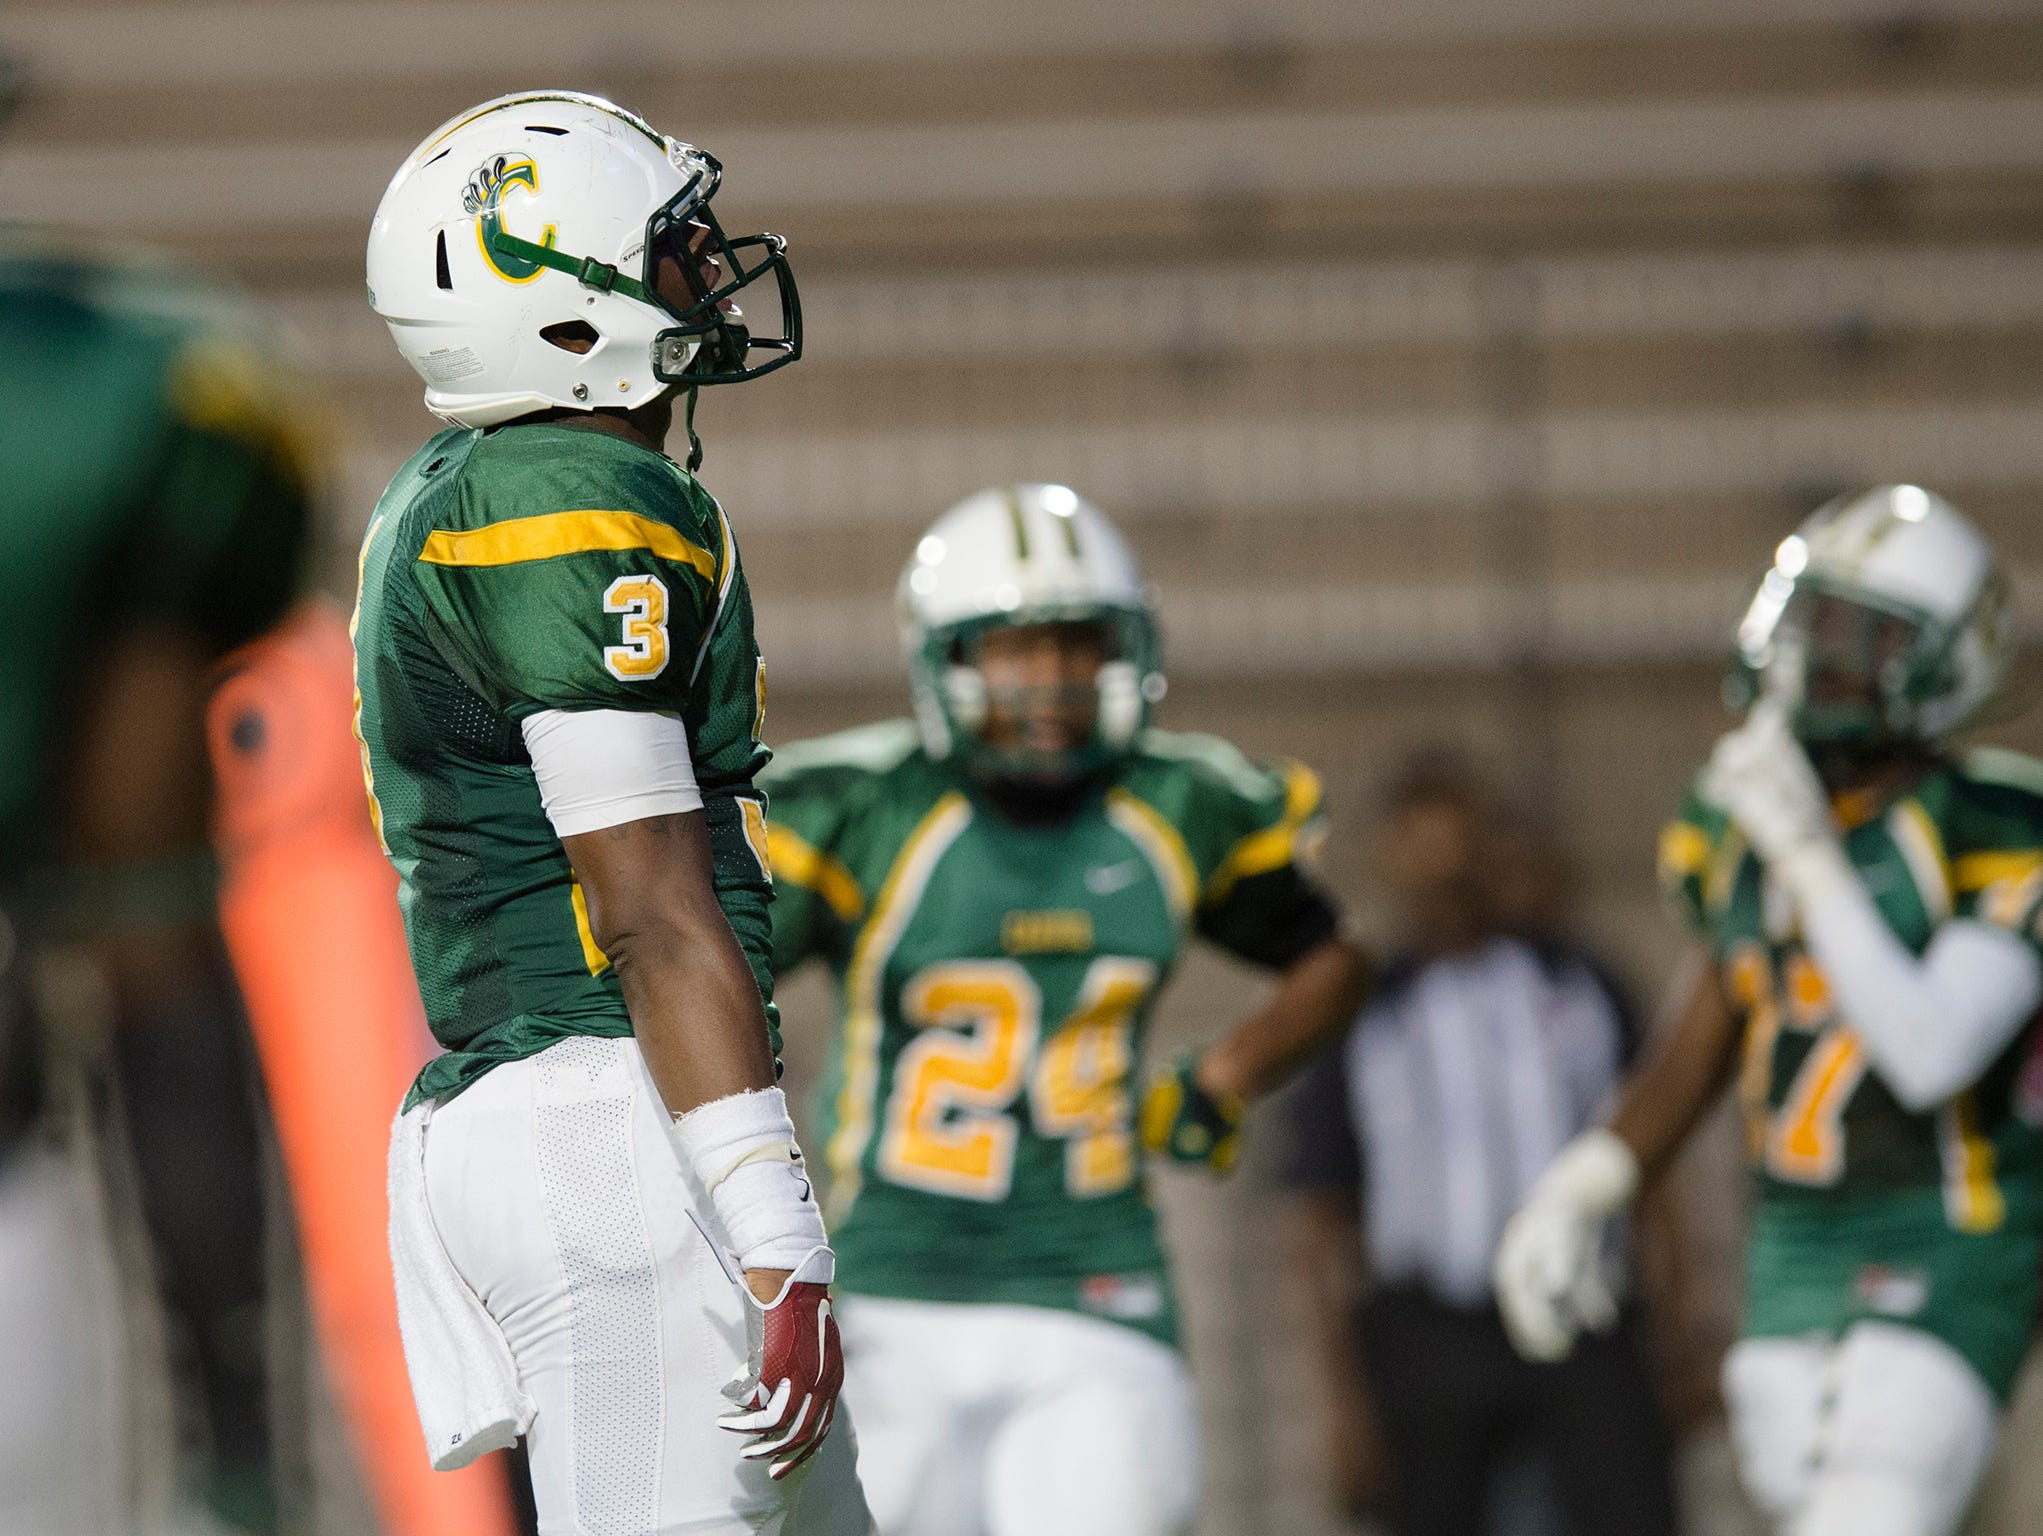 Carver linebacker Lyndell Wilson (3) reacts to a Prattville touchdown during the AHSAA football game on Friday, Sept. 25, 2015, at Cramton Bowl in Montgomery, Ala.